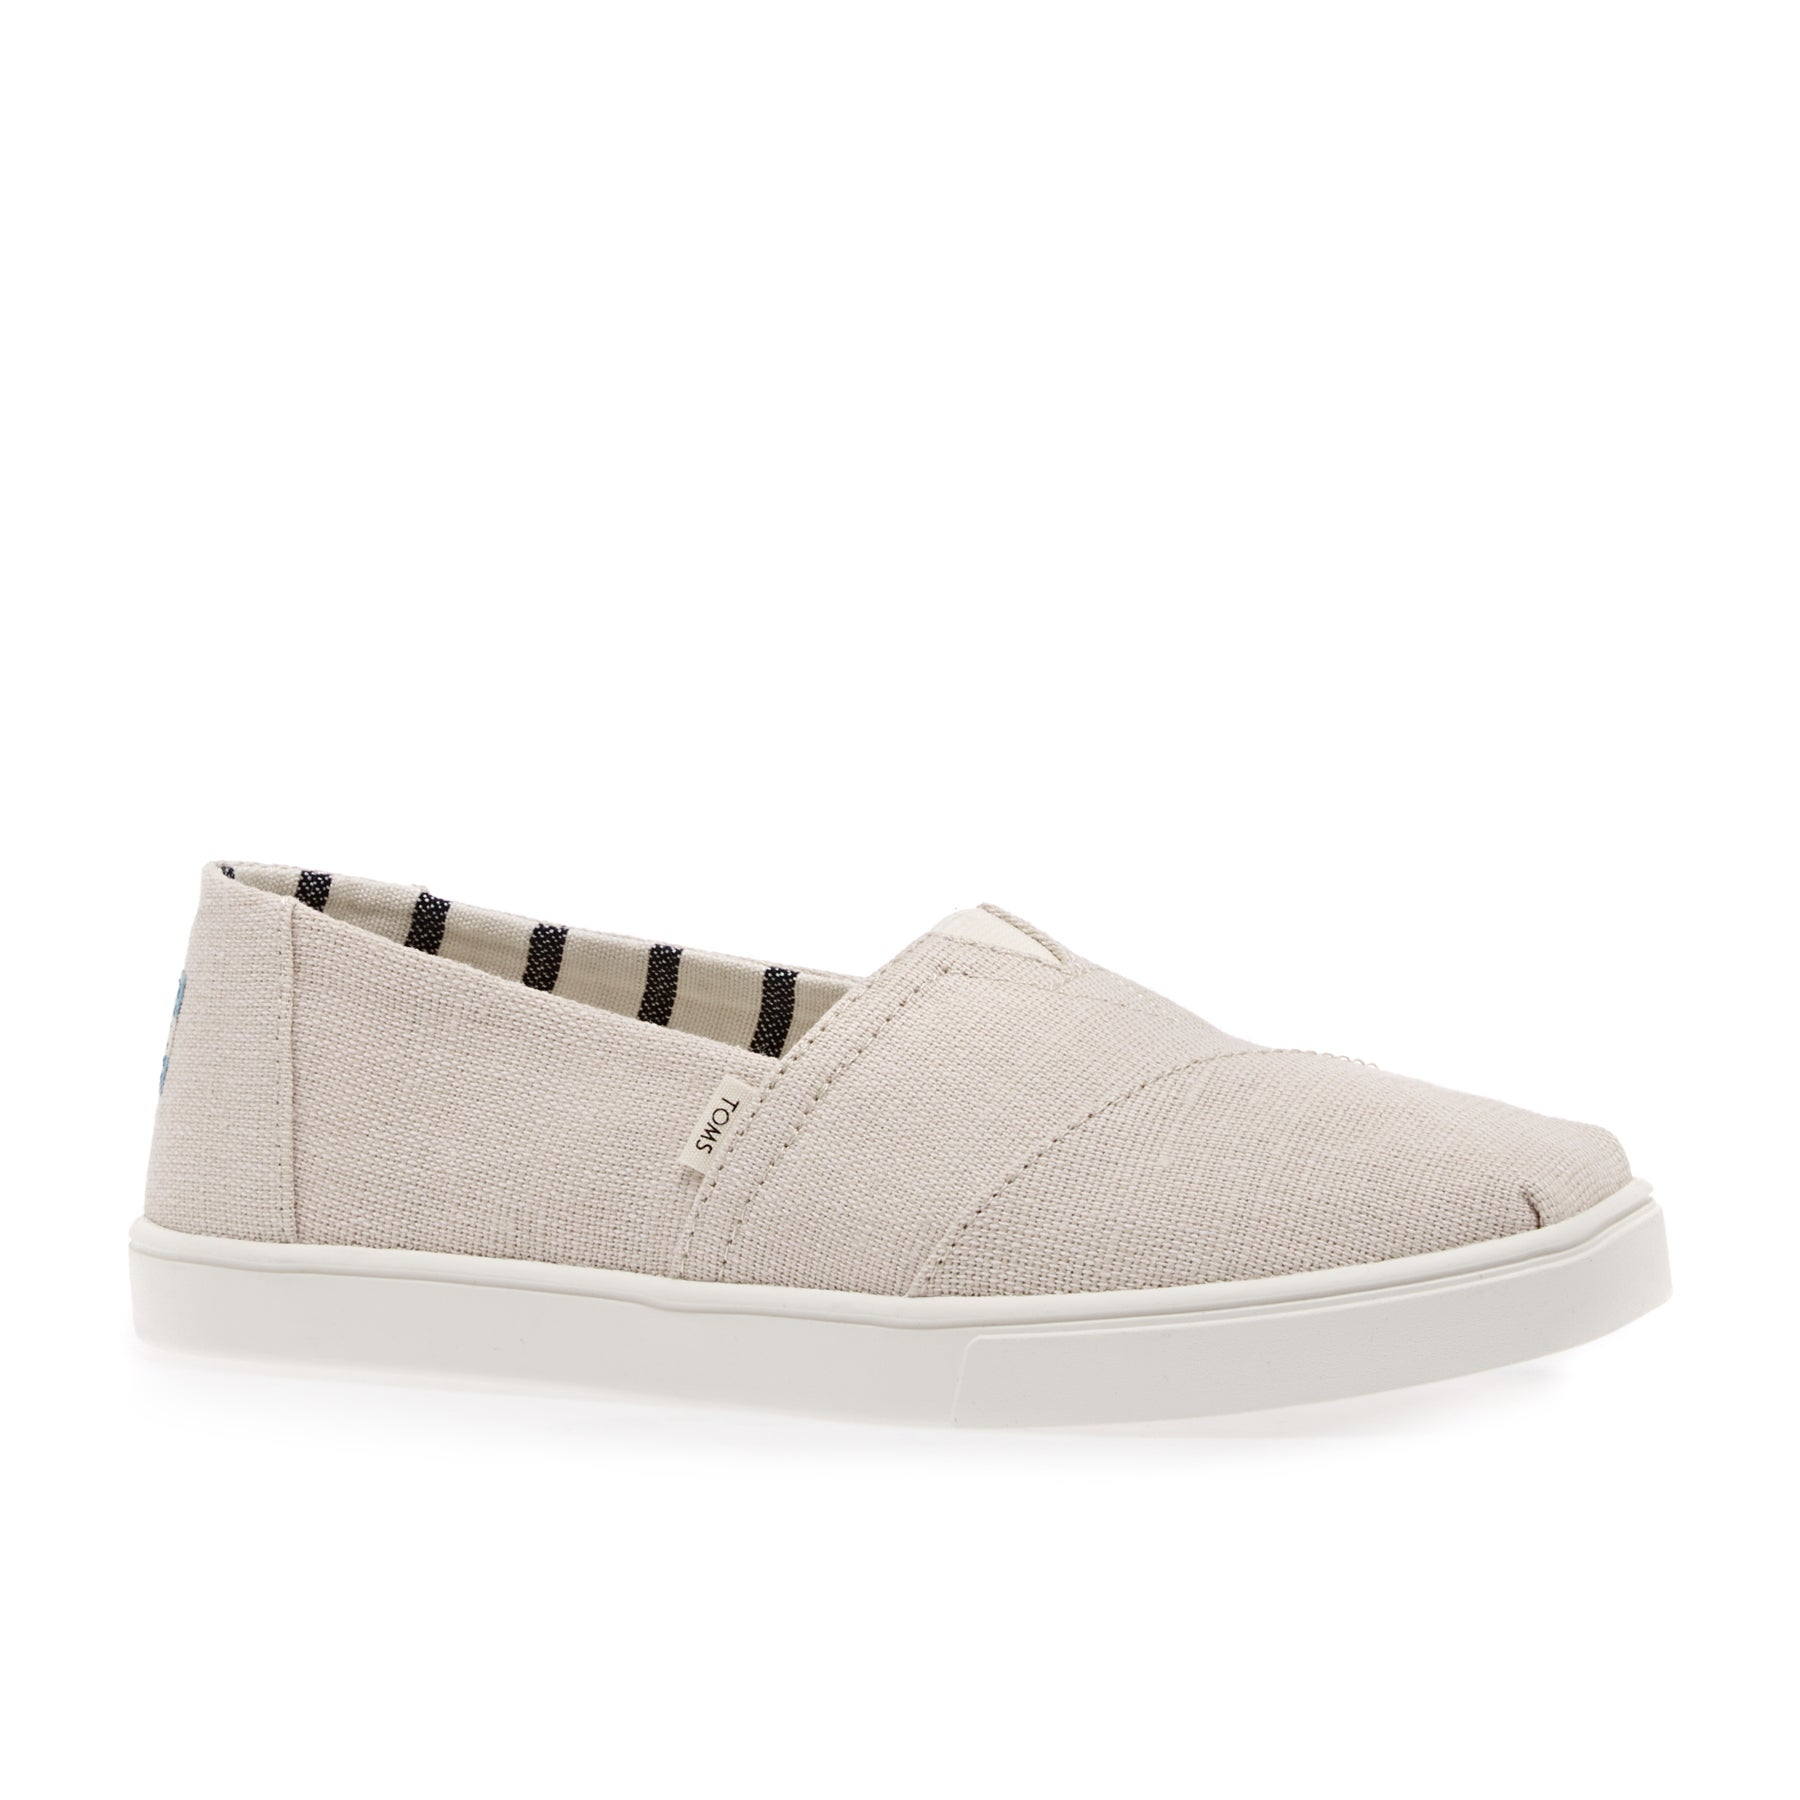 Toms Canvas Cupsole Womens Slip On Shoes - Natural